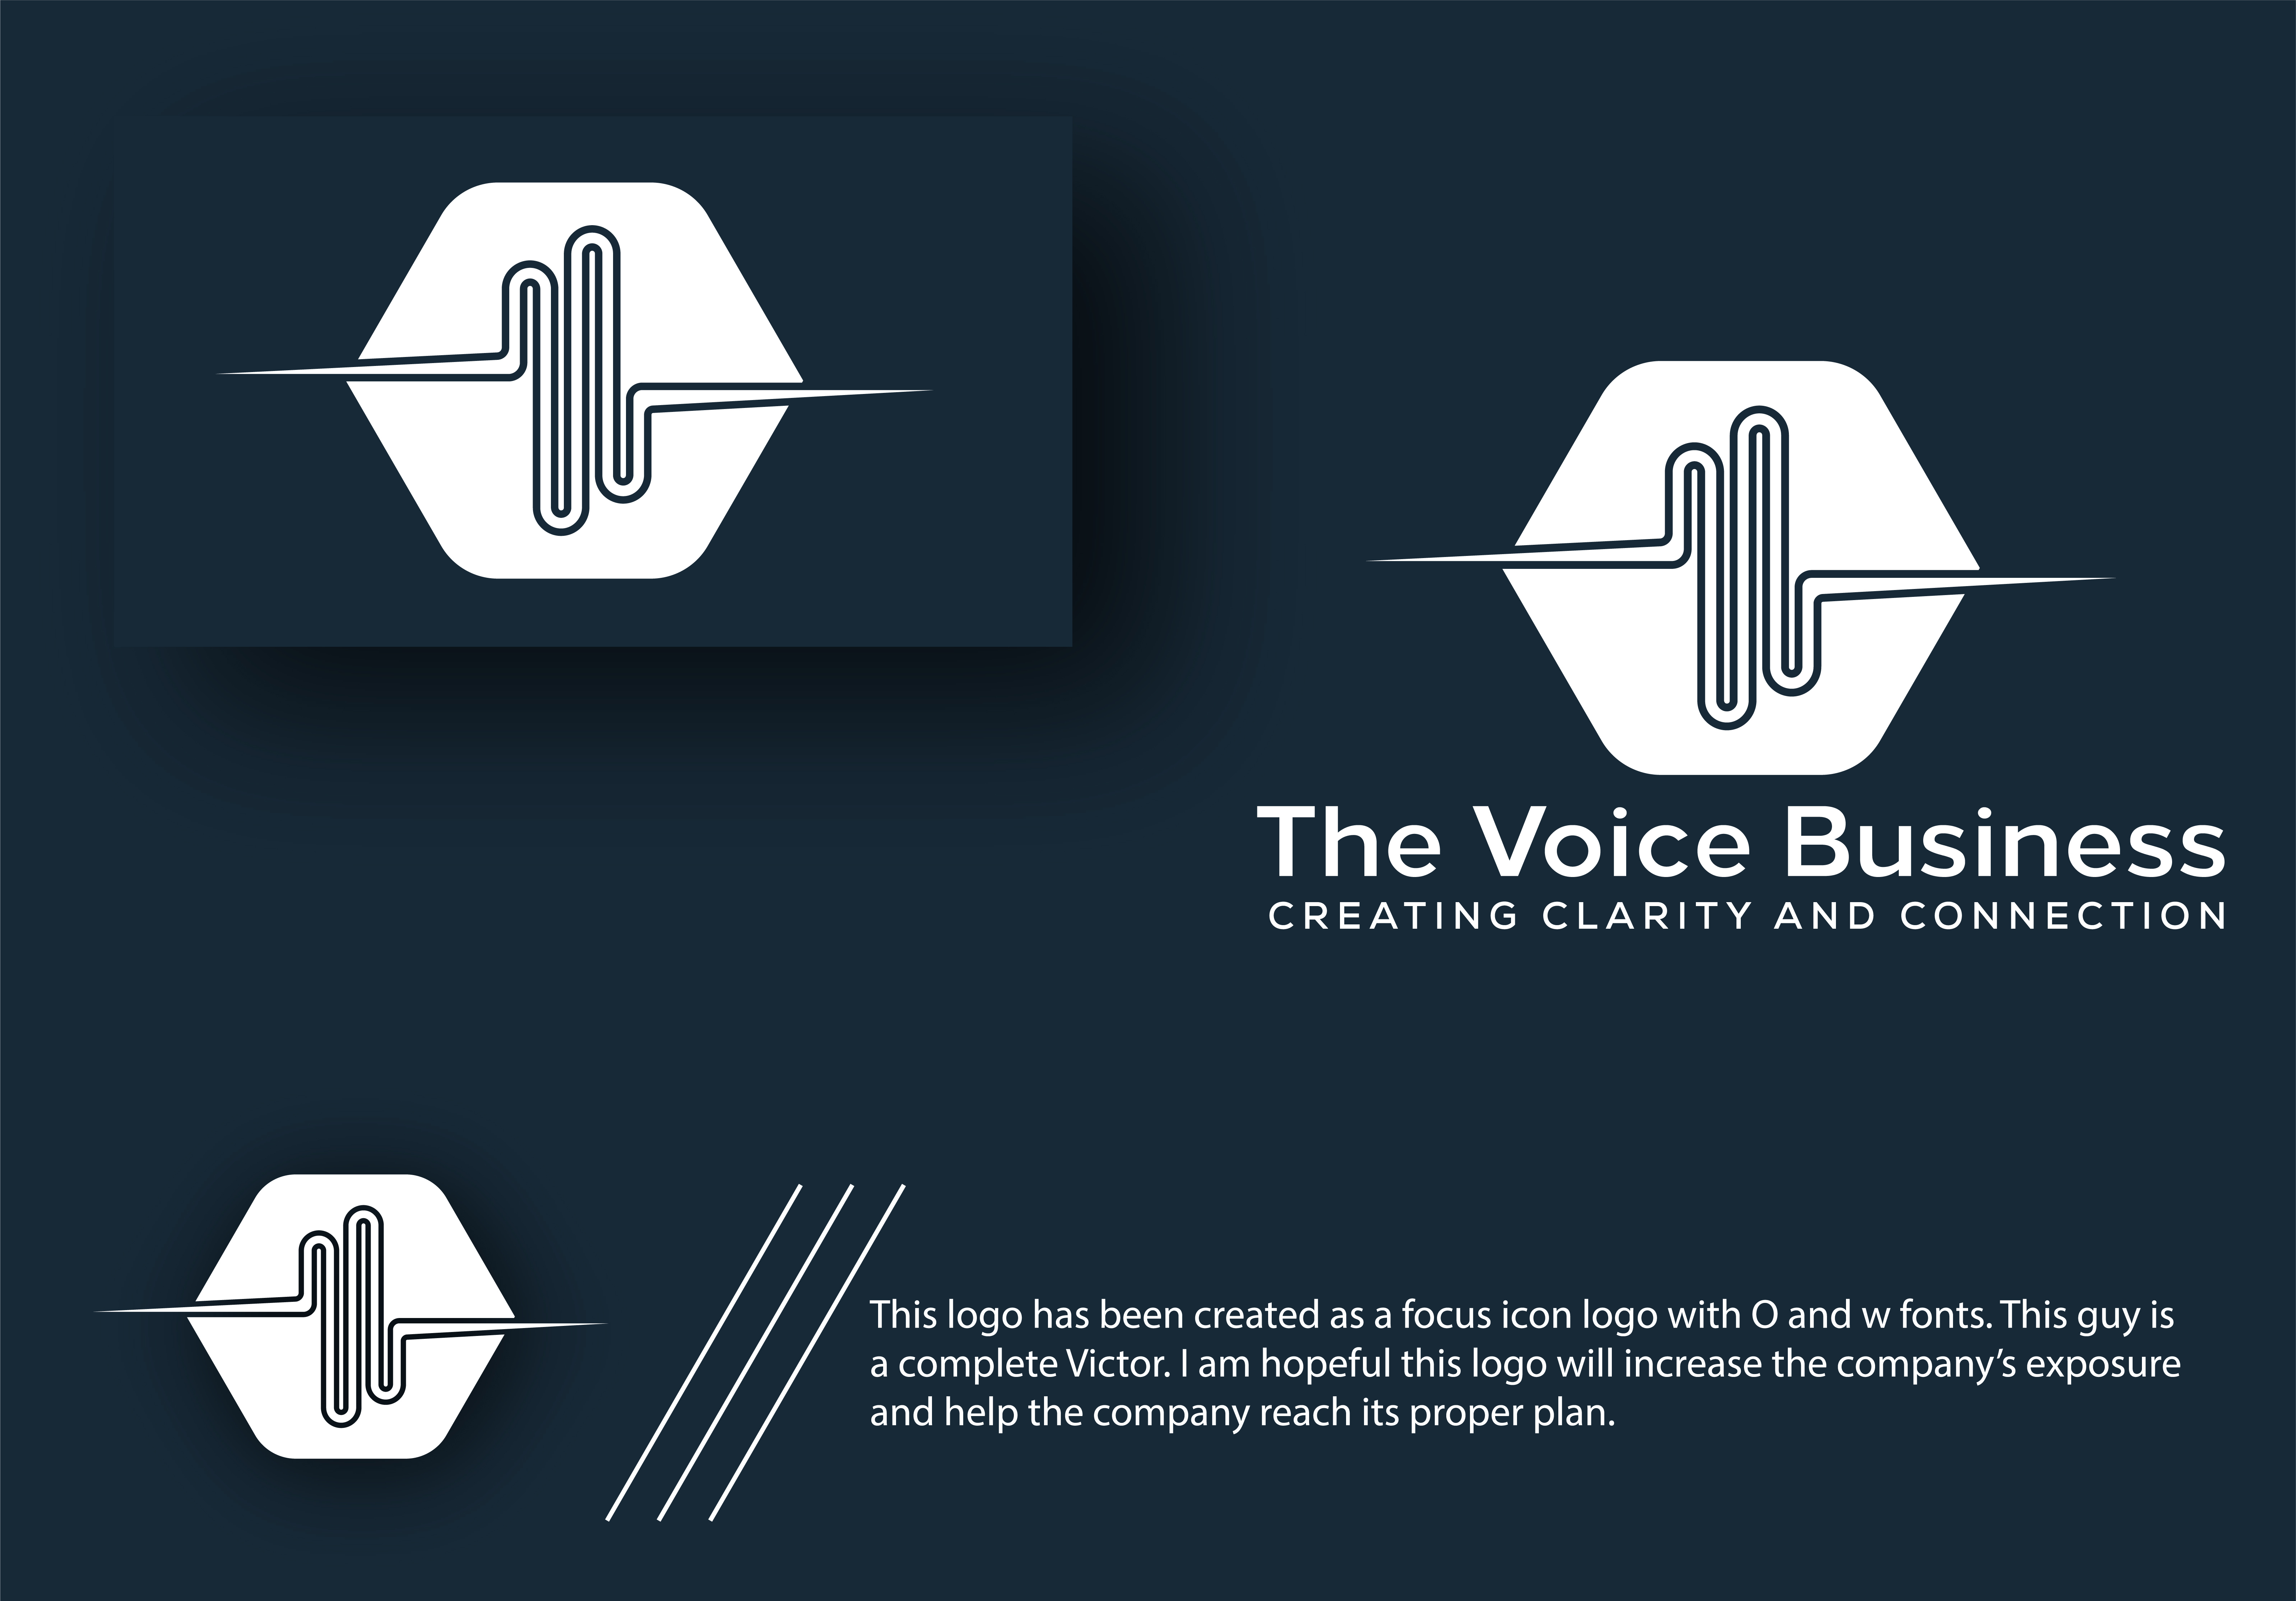 I will design Modern Minimalist versatile business logo for you